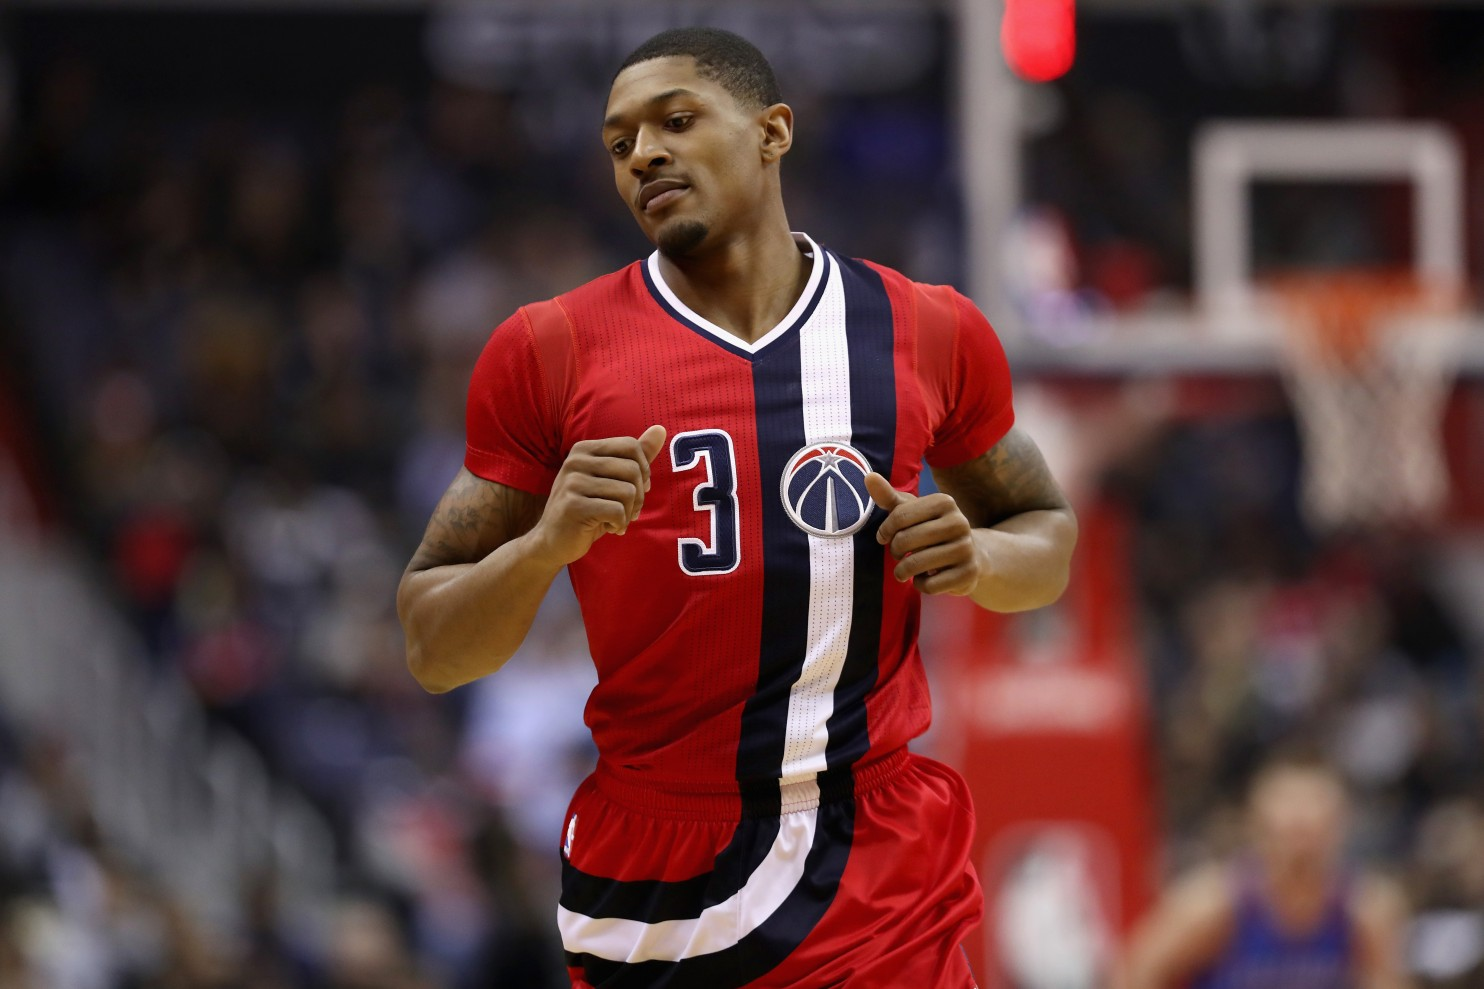 all star game selection confusing for bradley beal and carmelo anthony 2017 images